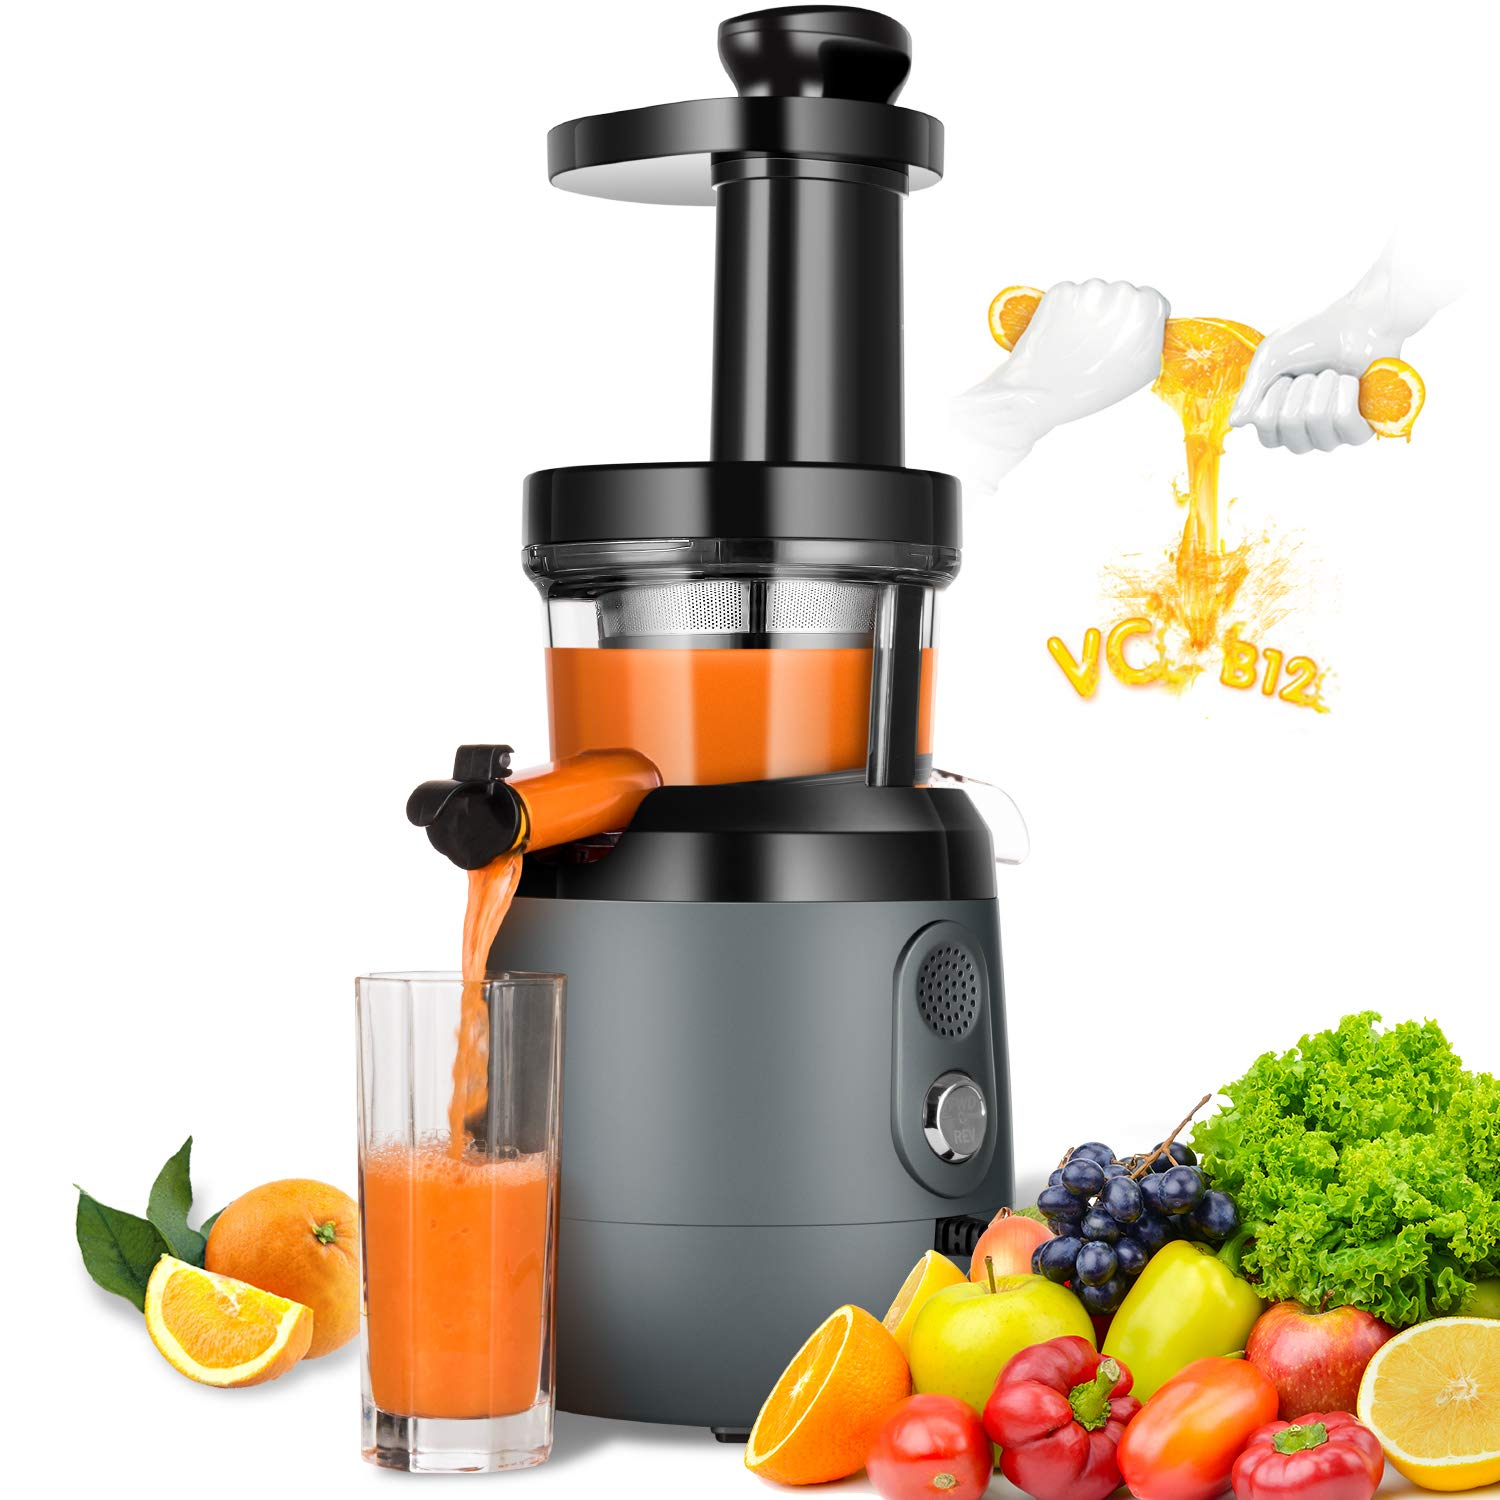 Slow Masticating Juicer Extractor, HAYKE Cold Press Juicer Machine for Higher Nutrient Fruit and Vegetable Juice, Extreme Quiet Motor & Reverse Function, Easy to Clean, BPA-Free